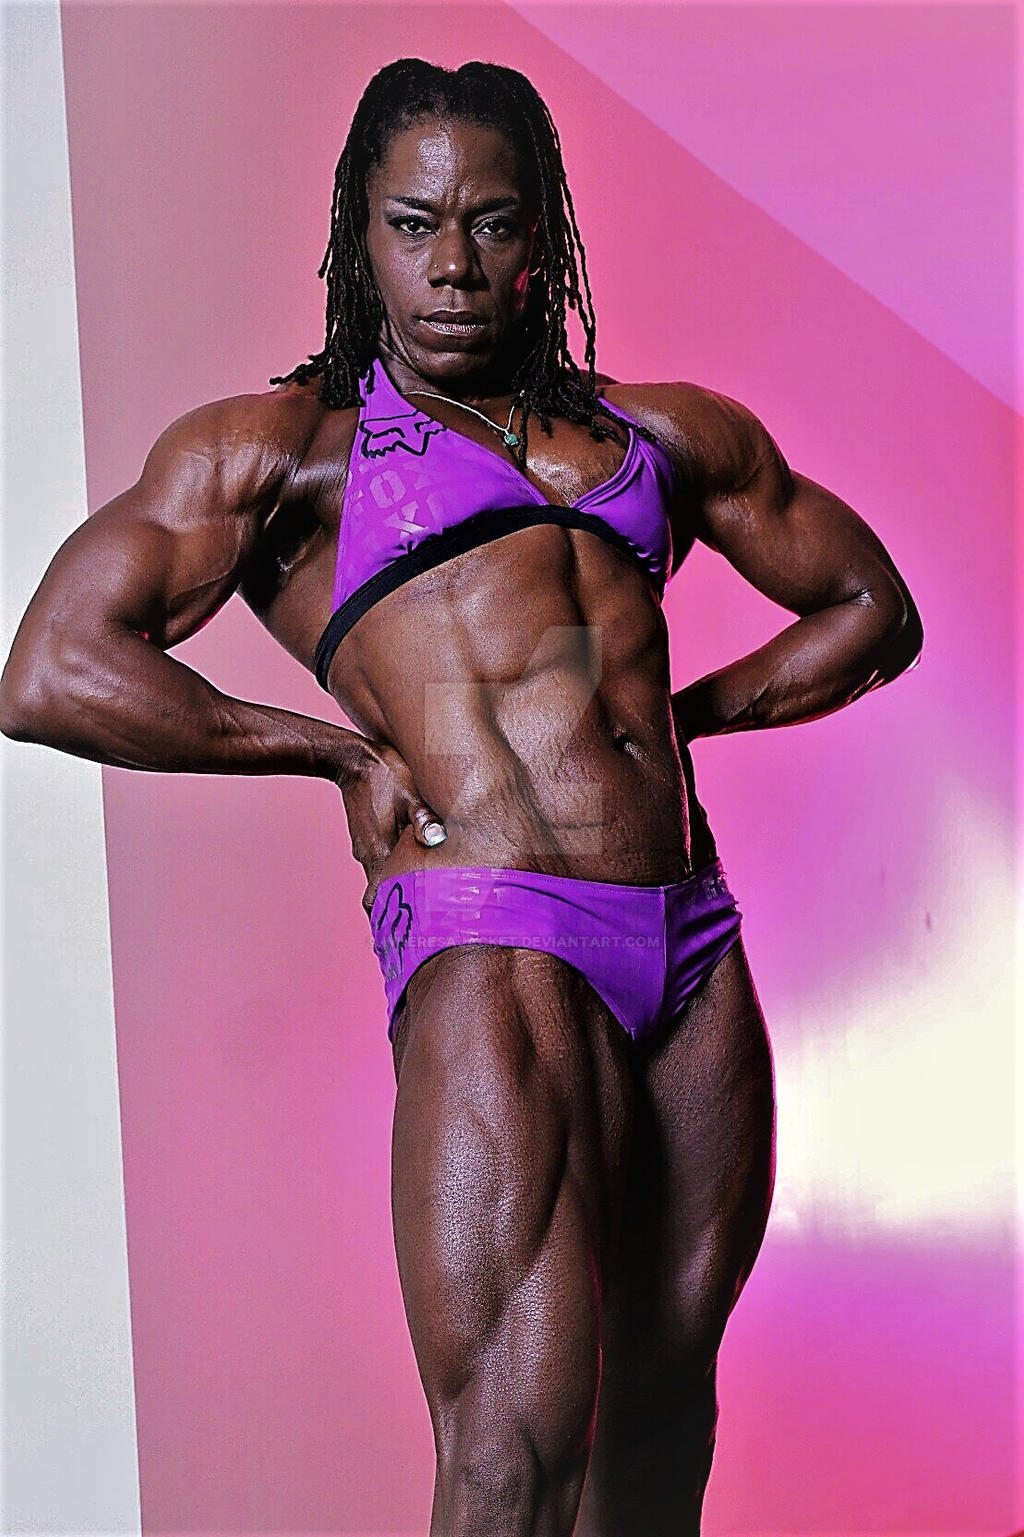 freckles ebony Muscle shared